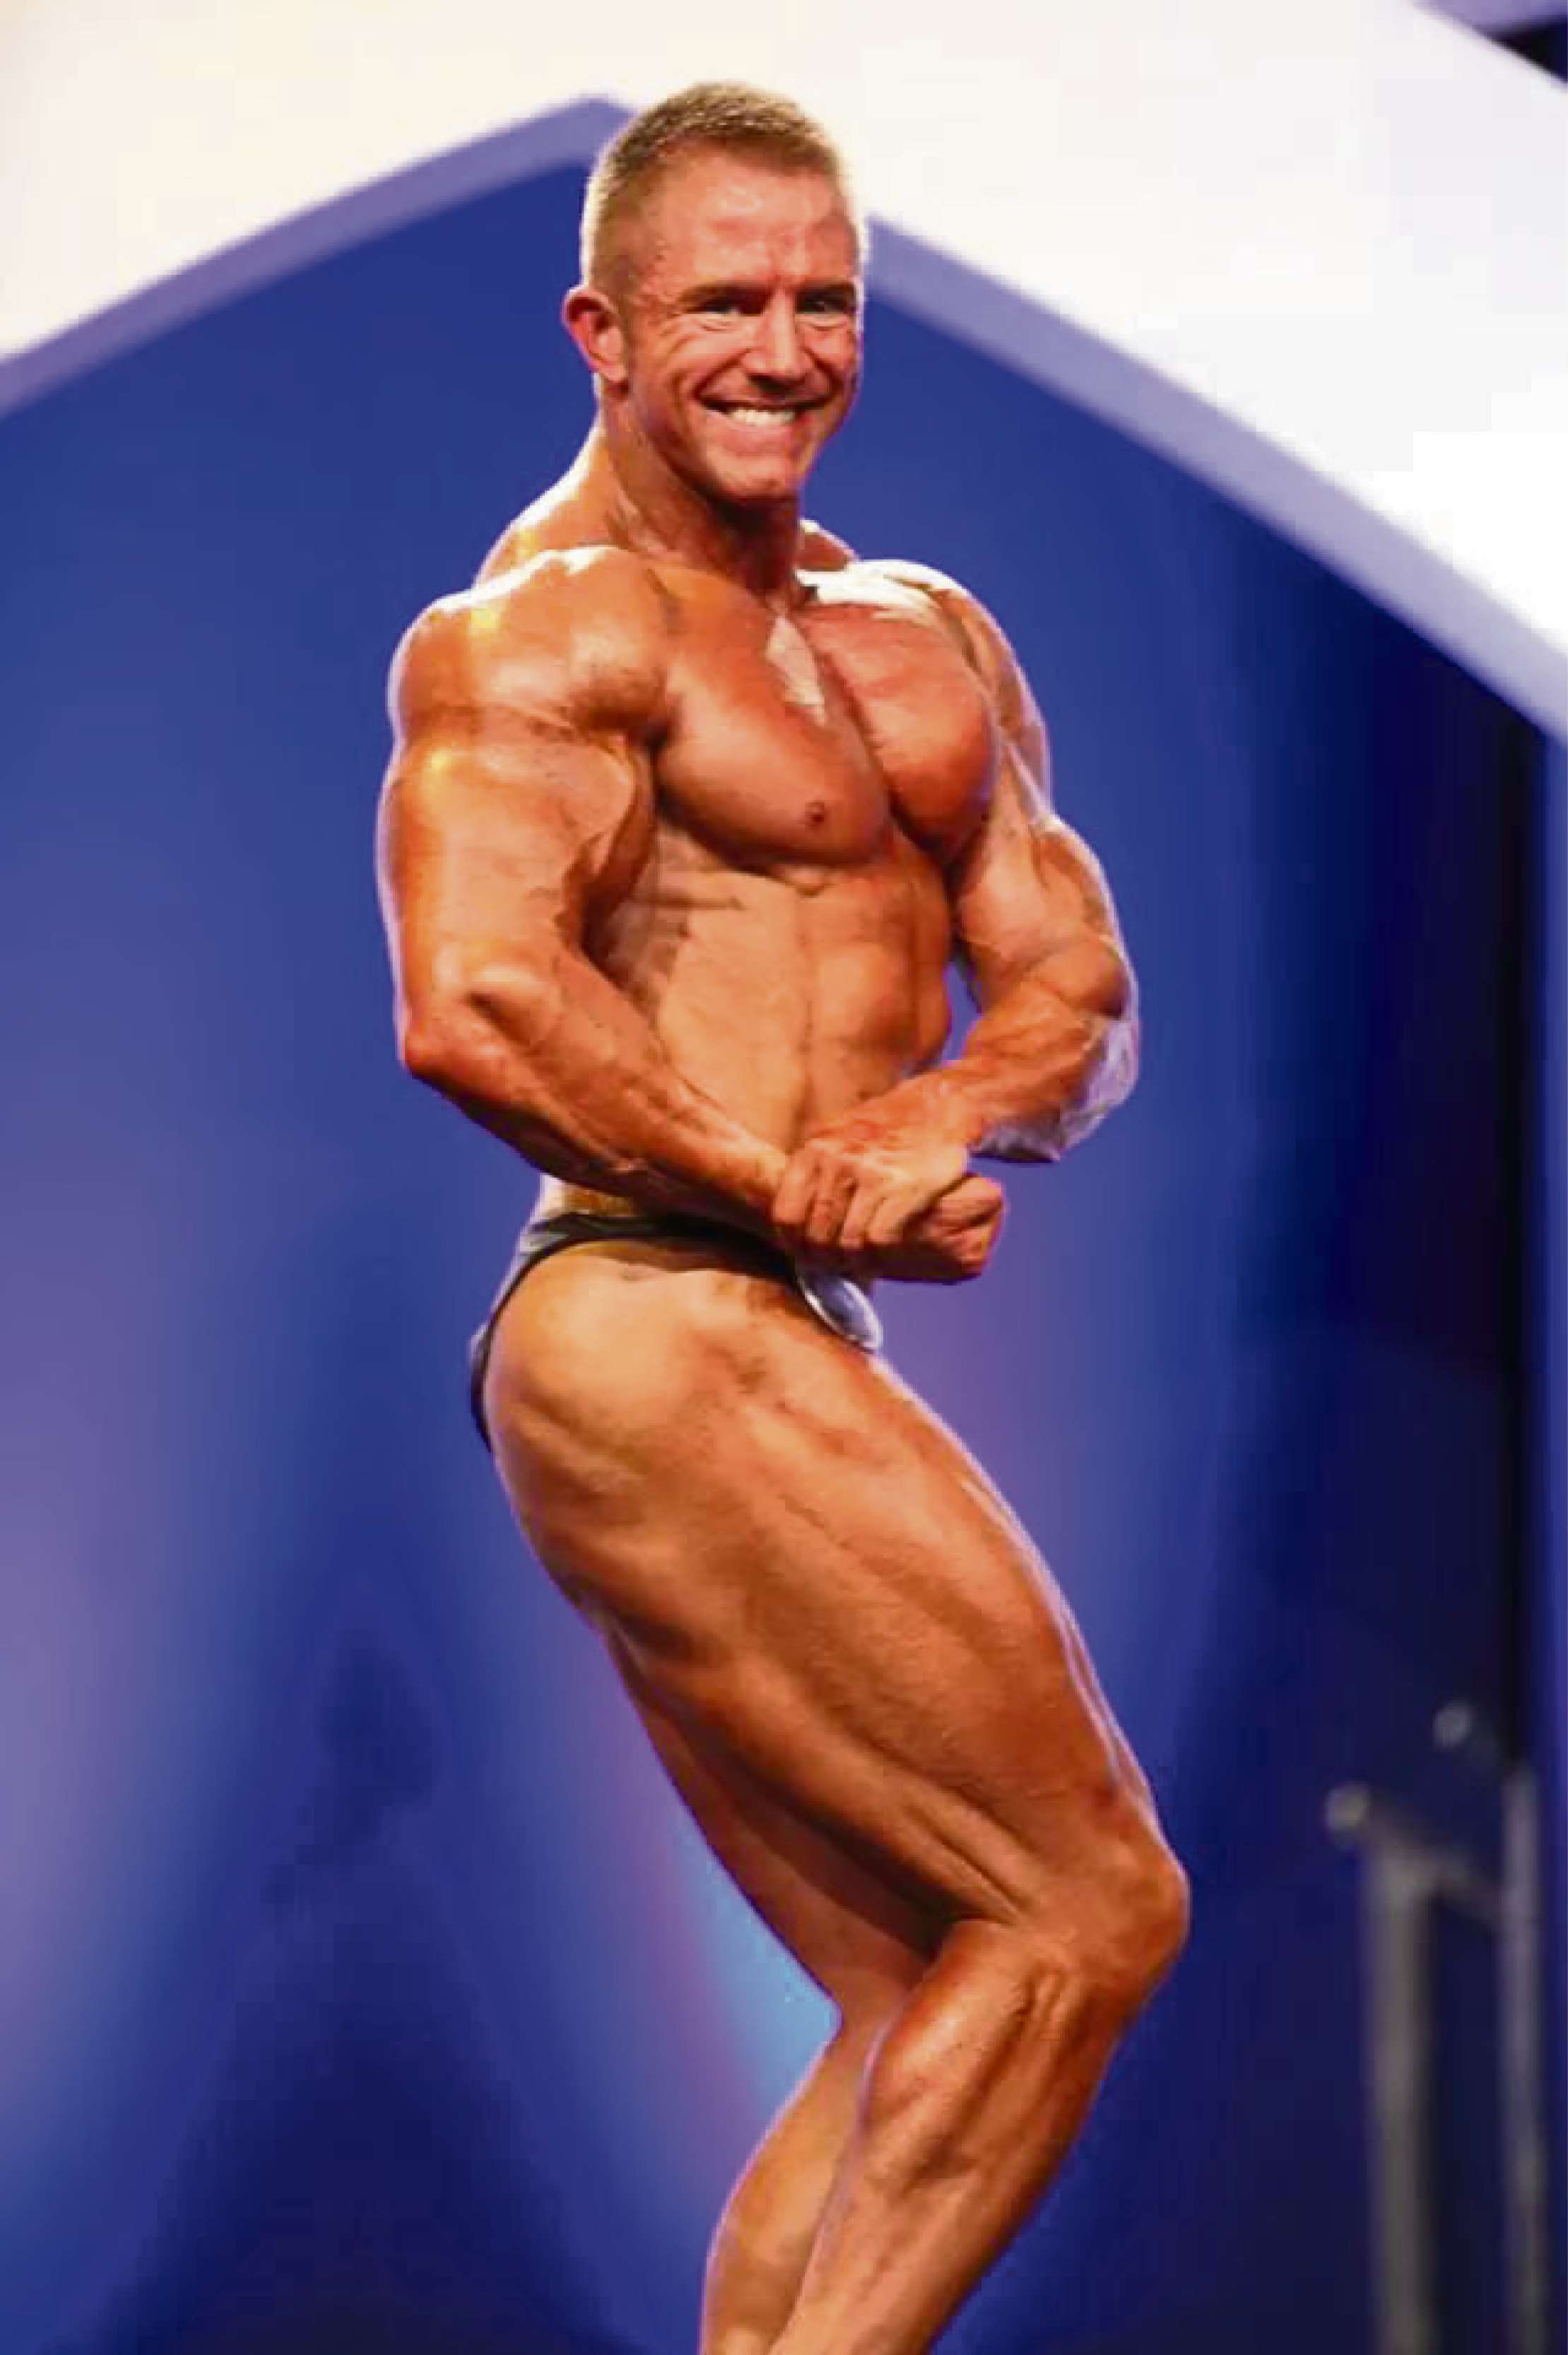 Triple champion bodybuilder Bruce coaches next generation